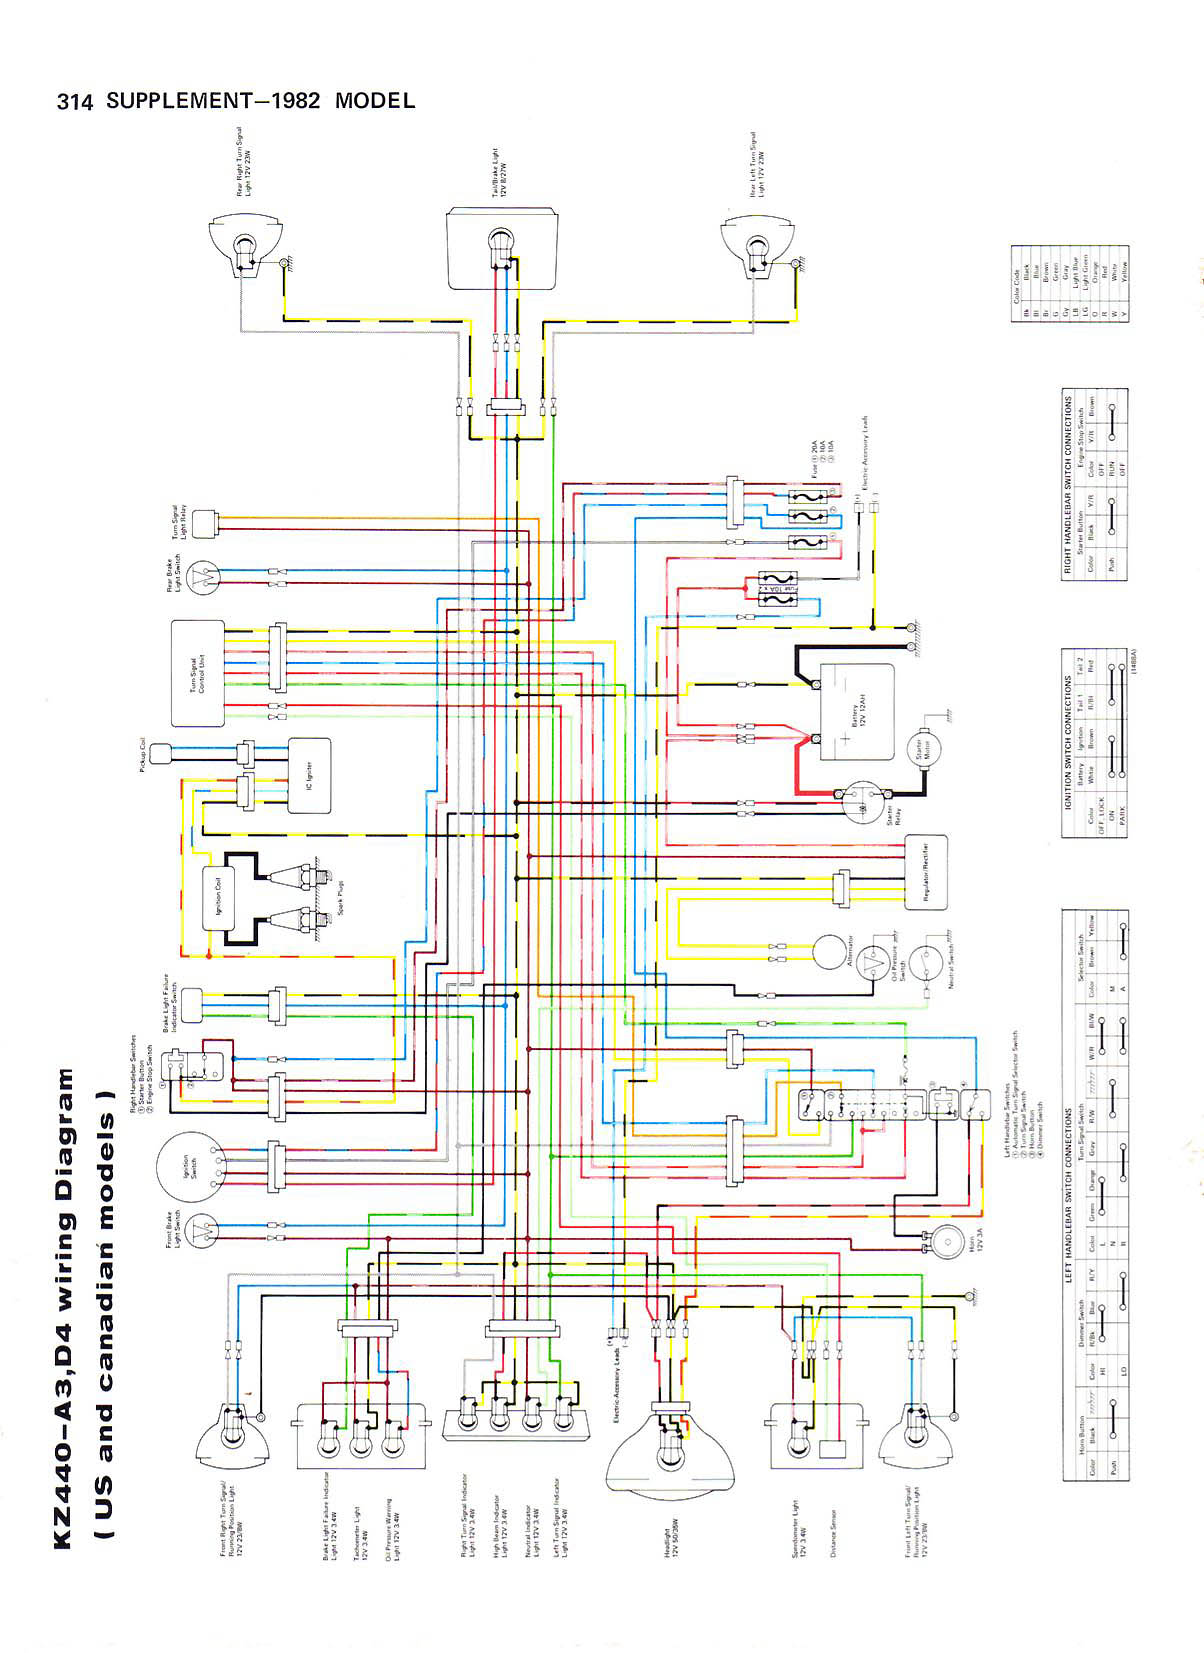 Kawasaki KZ 440 %2780 a %2782 Service Manual_Page_311 kz400 wiring diagram 1983 kawasaki motorcycle wiring diagrams  at crackthecode.co